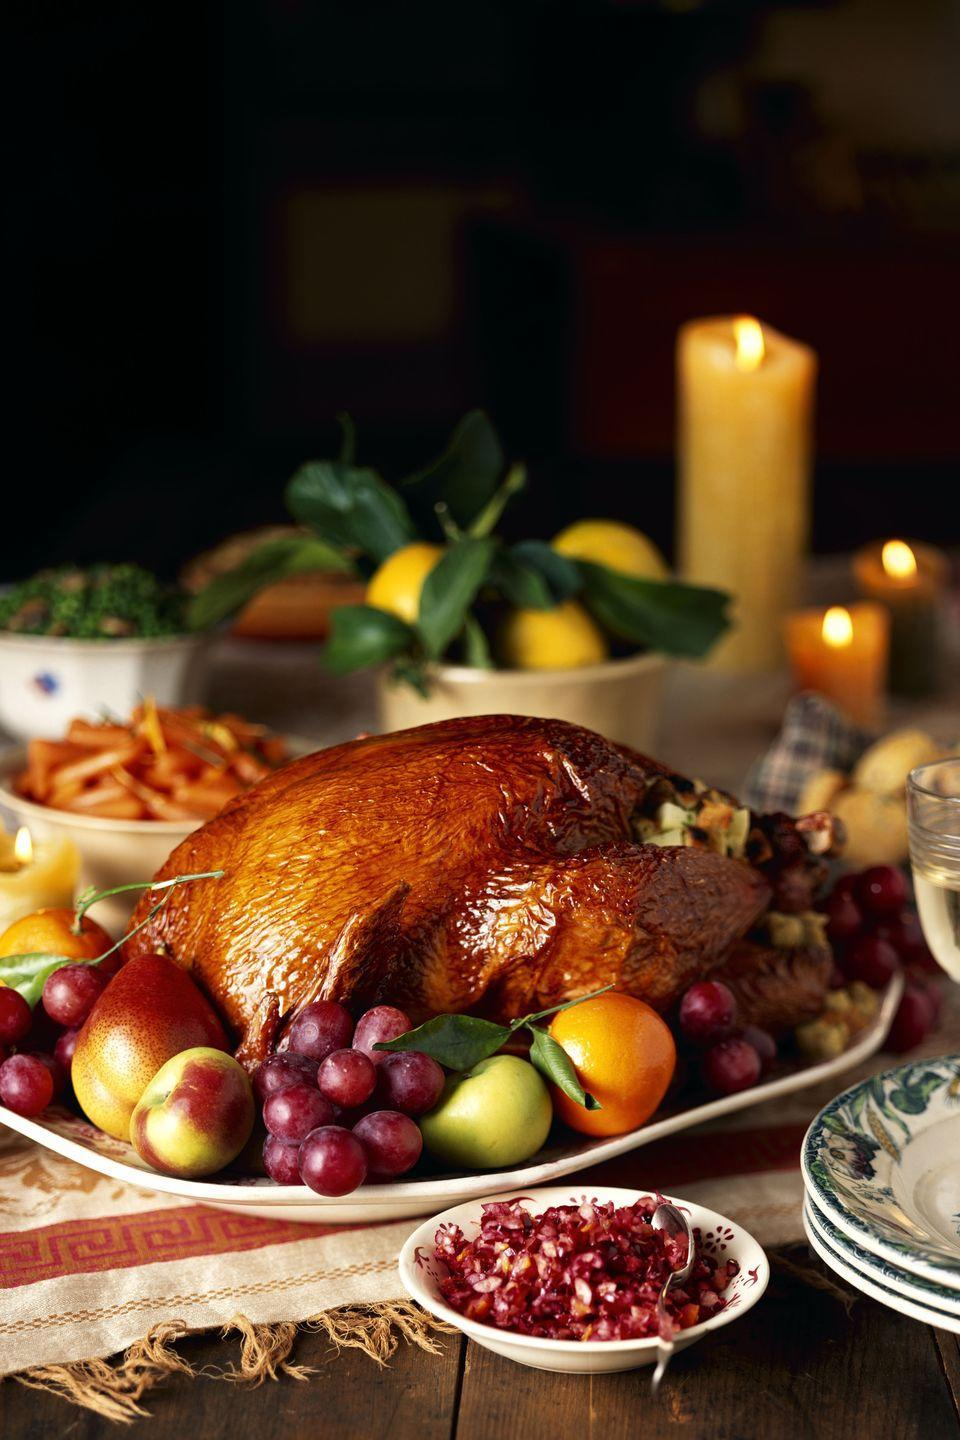 """<p>The lush color and rich harvest of autumn fruit—persimmons, pomegranates, and quinces—are incorporated in this menu.</p><p><strong>Starters:</strong></p><p><a href=""""https://www.countryliving.com/food-drinks/recipes/a1123/roasted-lemon-dip-3229/"""" rel=""""nofollow noopener"""" target=""""_blank"""" data-ylk=""""slk:Roasted Lemon Dip"""" class=""""link rapid-noclick-resp"""">Roasted Lemon Dip</a></p><p><strong>Main Course:</strong></p><p><a href=""""https://www.countryliving.com/food-drinks/recipes/a1017/roast-turkey-pomegranate-sauce-3126/"""" rel=""""nofollow noopener"""" target=""""_blank"""" data-ylk=""""slk:Roast Turkey with Pomegranate Sauce"""" class=""""link rapid-noclick-resp"""">Roast Turkey with Pomegranate Sauce</a></p><p><strong>Side Dishes:</strong></p><p><a href=""""https://www.countryliving.com/food-drinks/recipes/a1836/cornbread-quince-pecan-stuffing-3959/"""" rel=""""nofollow noopener"""" target=""""_blank"""" data-ylk=""""slk:Cornbread, Quince, and Pecan Stuffing"""" class=""""link rapid-noclick-resp"""">Cornbread, Quince, and Pecan Stuffing</a></p><p><a href=""""https://www.countryliving.com/food-drinks/recipes/a982/double-stuffed-potatoes-3082/"""" rel=""""nofollow noopener"""" target=""""_blank"""" data-ylk=""""slk:Double-Stuffed Potatoes"""" class=""""link rapid-noclick-resp"""">Double-Stuffed Potatoes</a></p><p><a href=""""https://www.countryliving.com/food-drinks/recipes/a954/roasted-cauliflower-cumin-3057/"""" rel=""""nofollow noopener"""" target=""""_blank"""" data-ylk=""""slk:Roasted Cauliflower with Cumin"""" class=""""link rapid-noclick-resp"""">Roasted Cauliflower with Cumin</a></p><p><a href=""""https://www.countryliving.com/food-drinks/recipes/a1822/creamy-brussels-sprouts-3946/"""" rel=""""nofollow noopener"""" target=""""_blank"""" data-ylk=""""slk:Creamy Brussels Sprouts"""" class=""""link rapid-noclick-resp"""">Creamy Brussels Sprouts</a></p><p><strong>Desserts:</strong></p><p><a href=""""https://www.countryliving.com/food-drinks/recipes/a1231/pomegranate-apple-cocktails-3337/"""" rel=""""nofollow noopener"""" target=""""_blank"""" data-ylk=""""slk:Hot Pomegranate-Apple Cider"""" class=""""link rapid-noclick-resp"""">Hot Pomegran"""